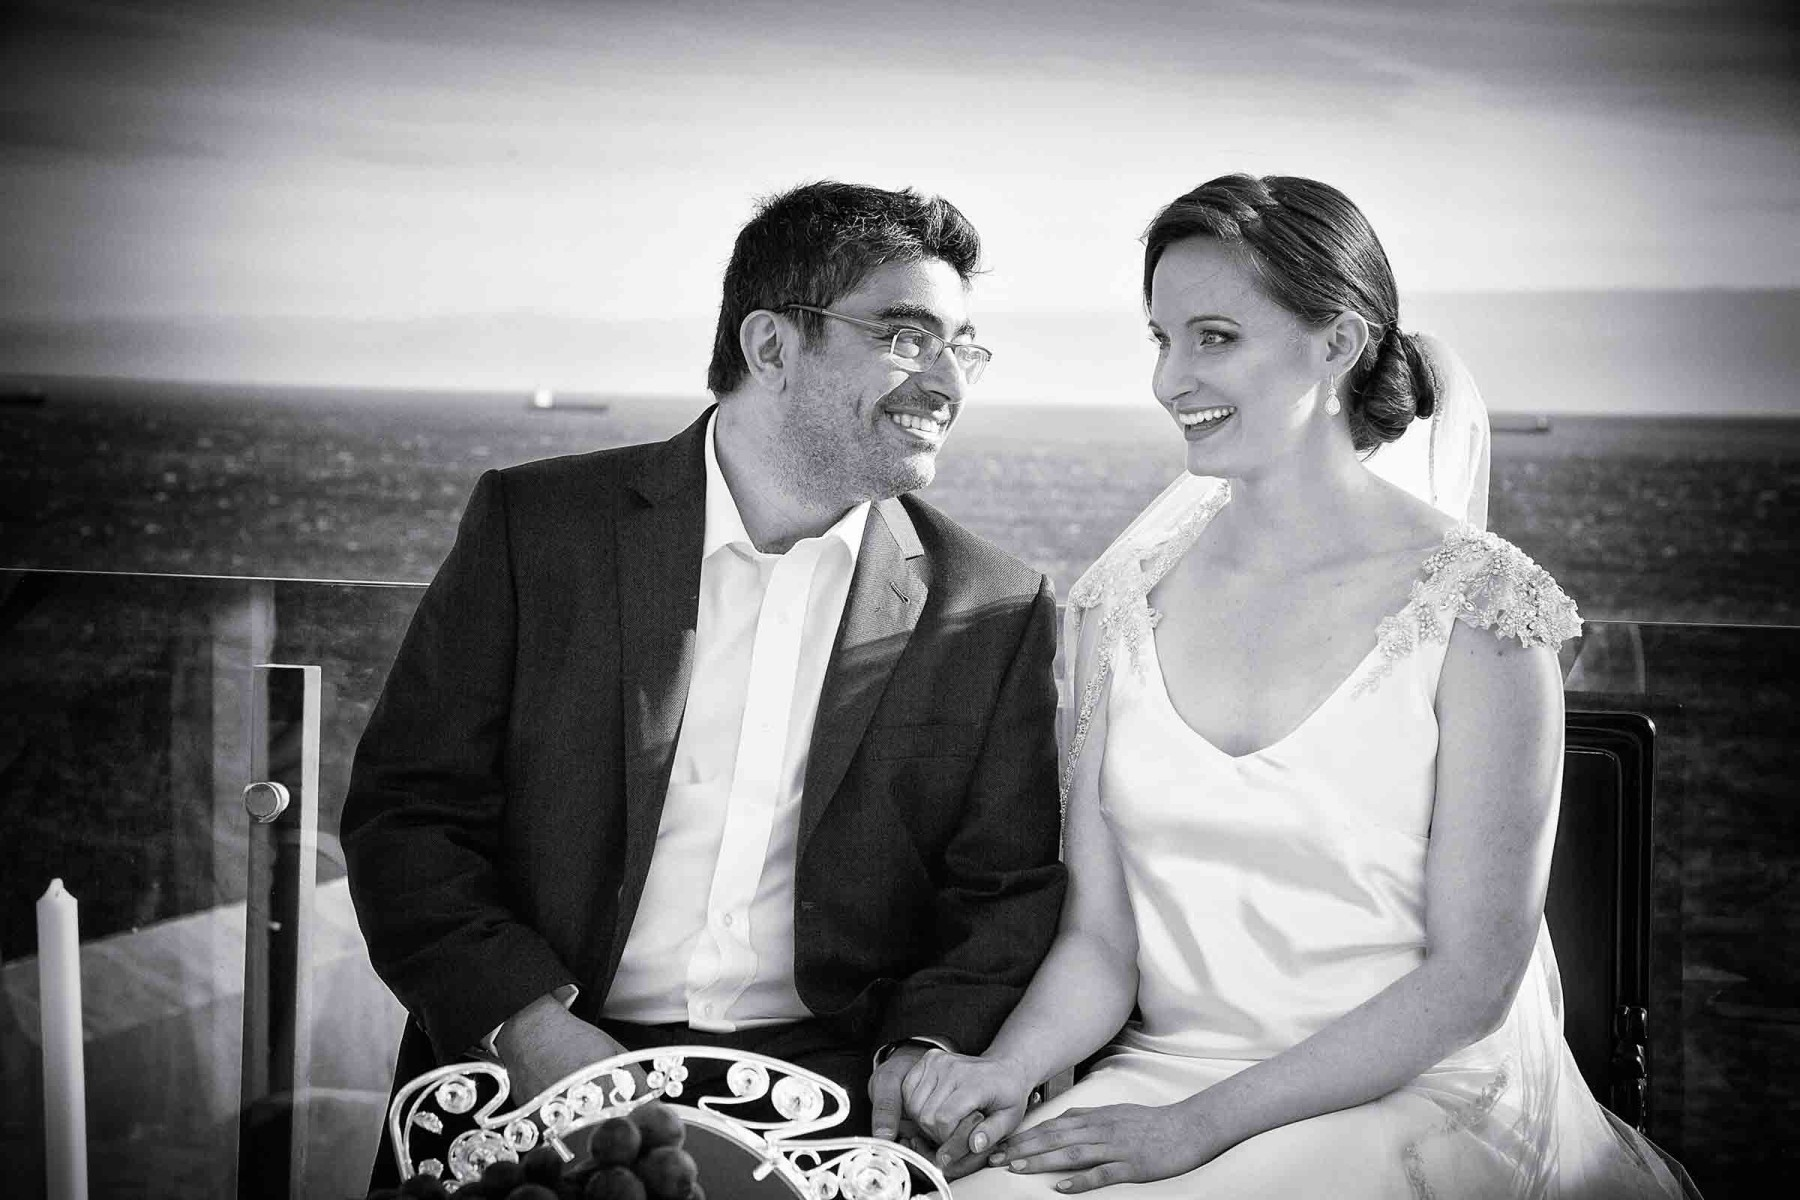 Wika+Mike_Portugal_2014_038bw_2400x1600